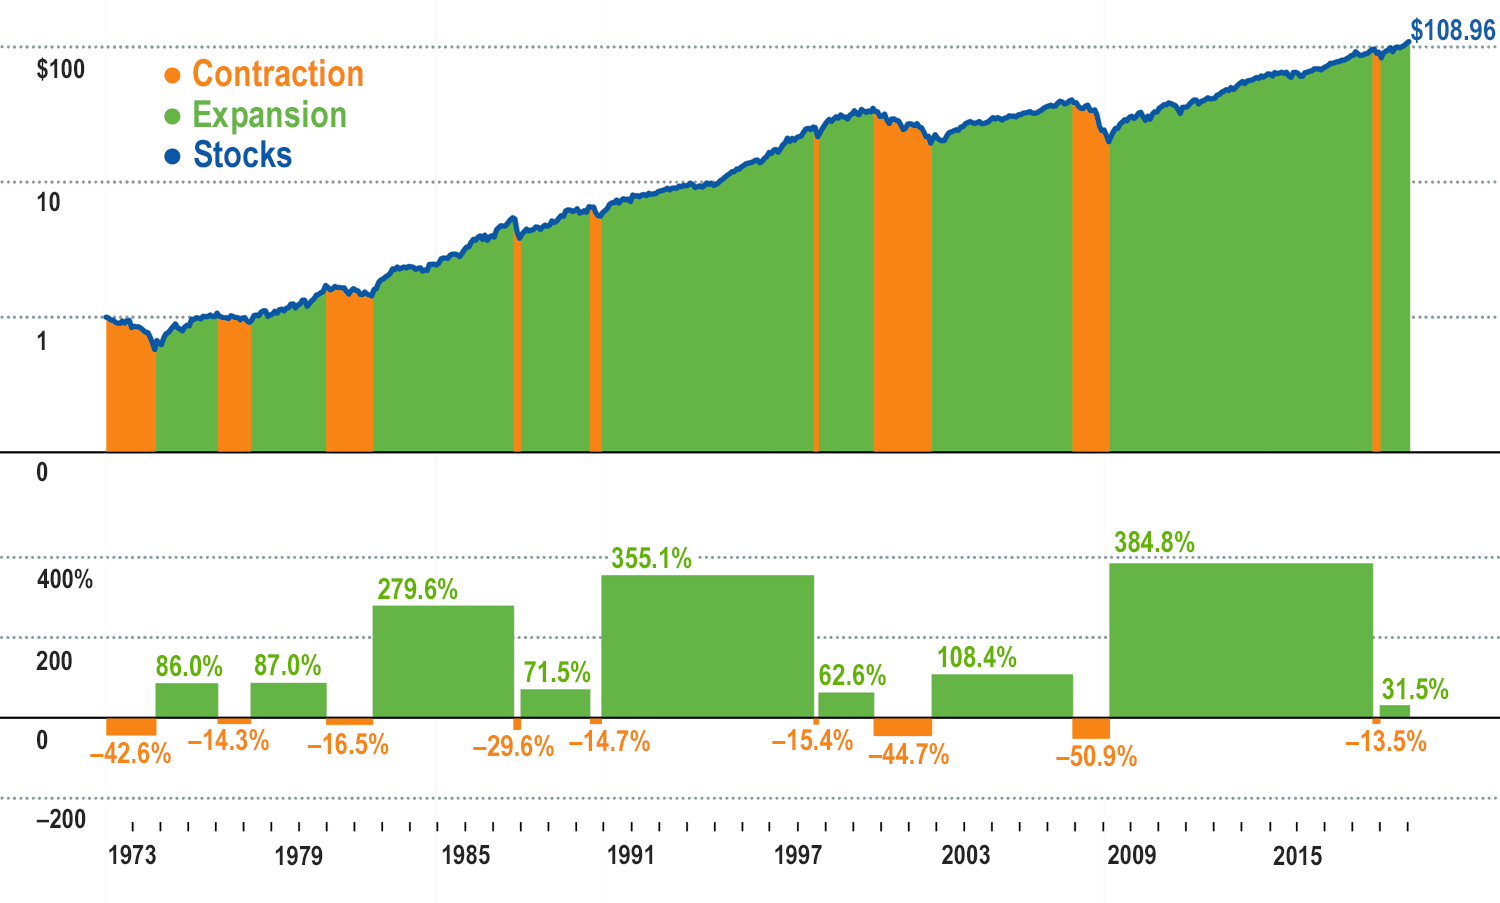 A chart showing stock market contractions and expansions from 1973 to 2019. The expansions represent a large portion of the graph with small periods of contraction at various times throughout the period.